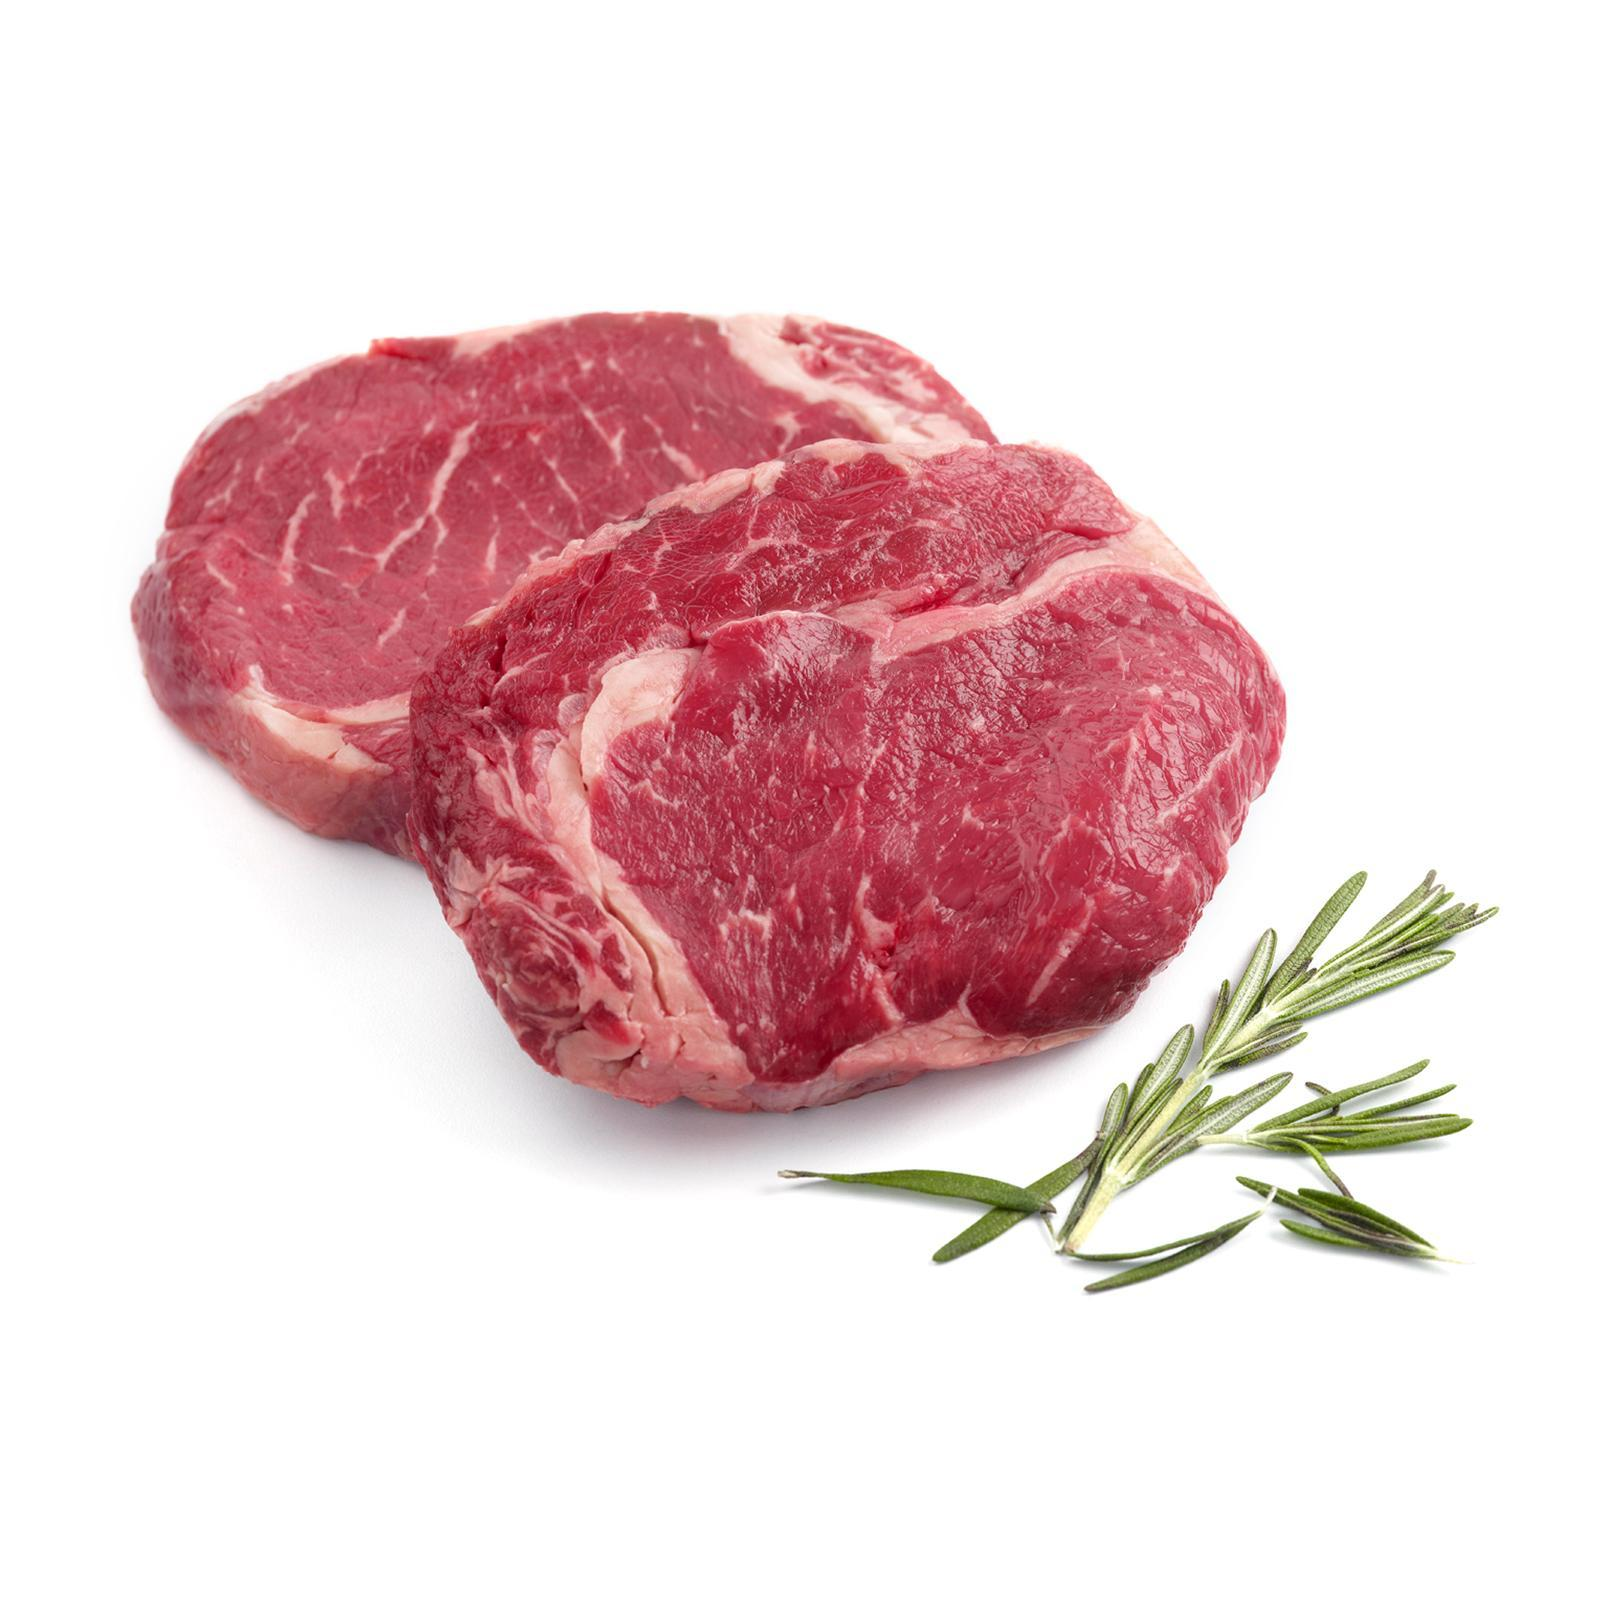 ZAC Butchery Angus Beef Rib-Eye Pack